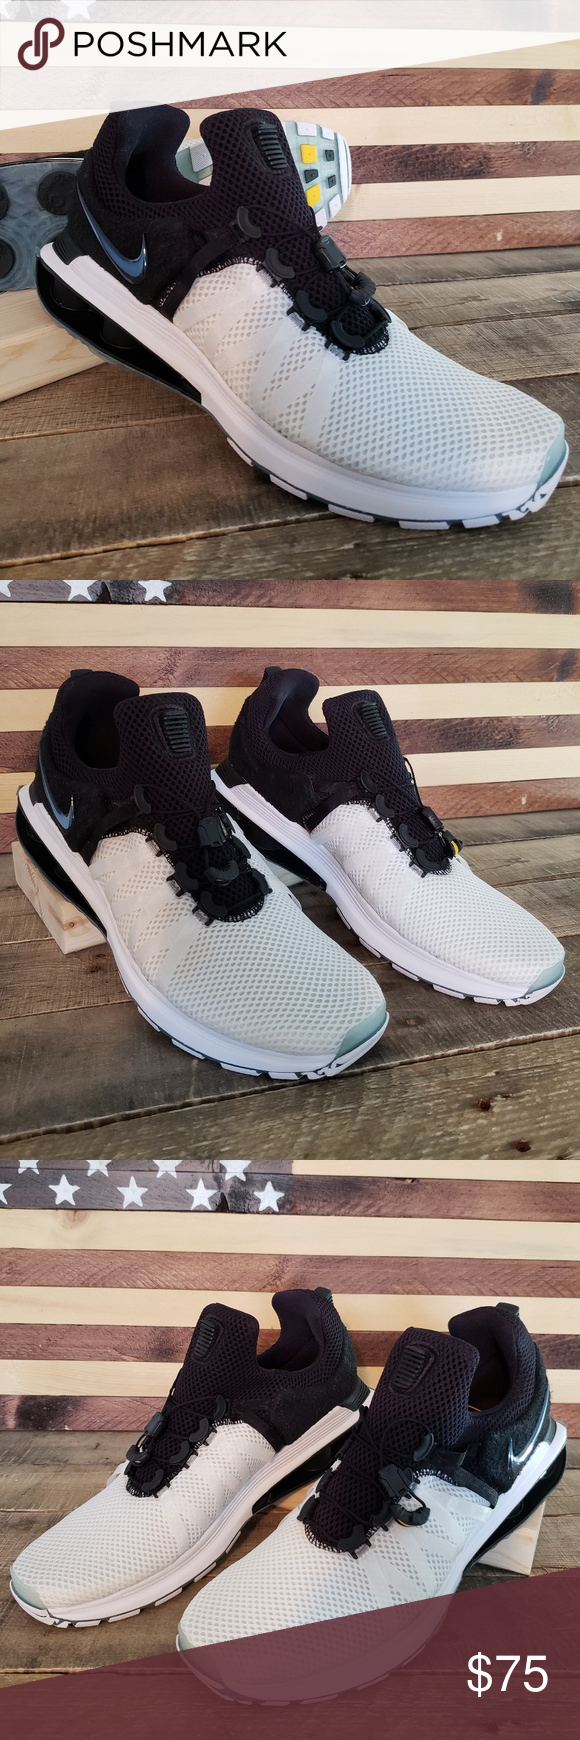 ea64ecdd4c4114 100% original. Carefully packaged and shipped immediately Let me know if  you have any questions Men s size 10.5